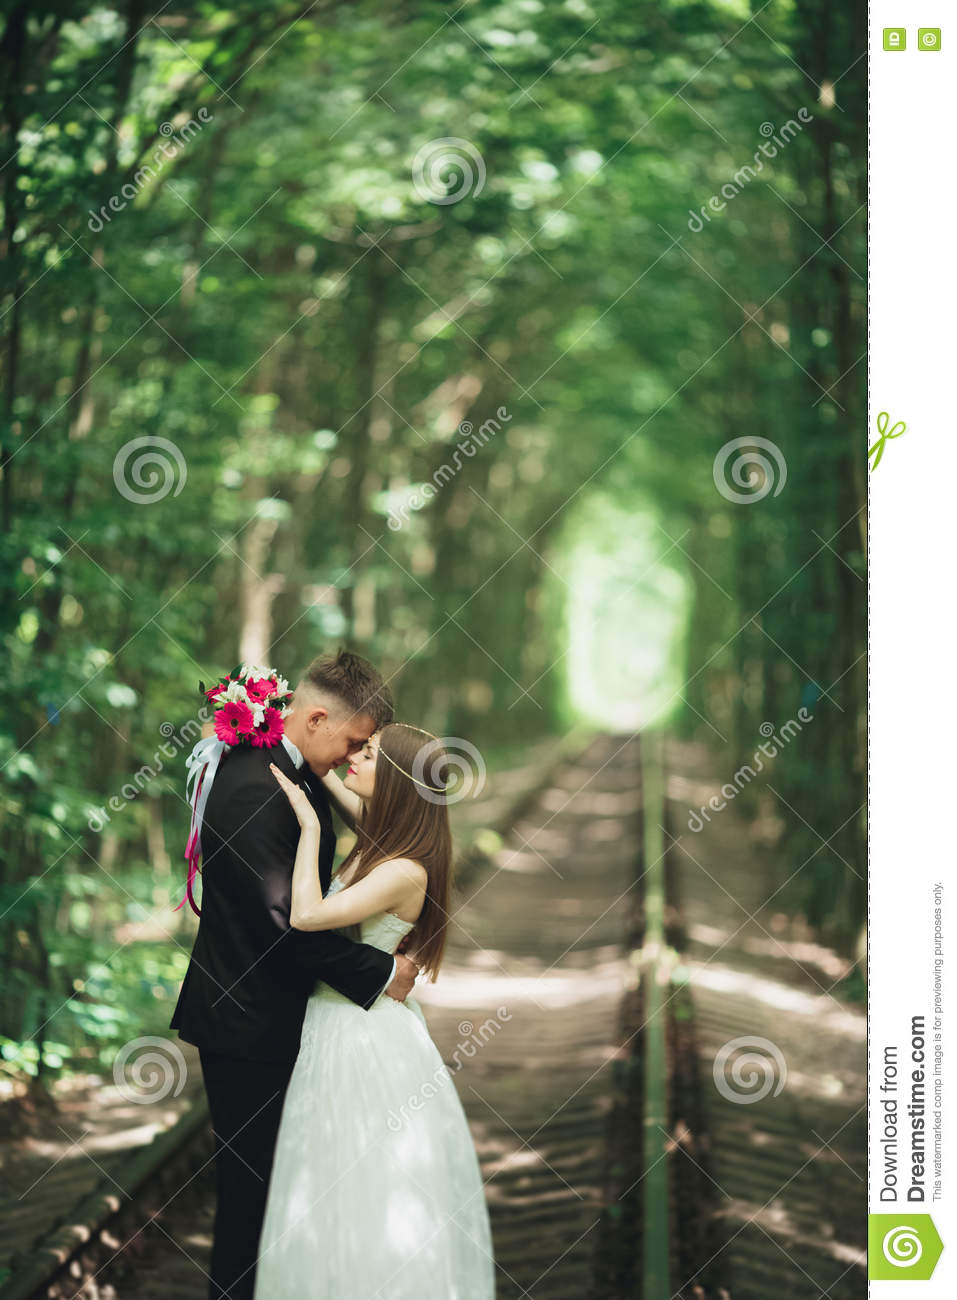 young wedding couple bride and groom posing on a railway track